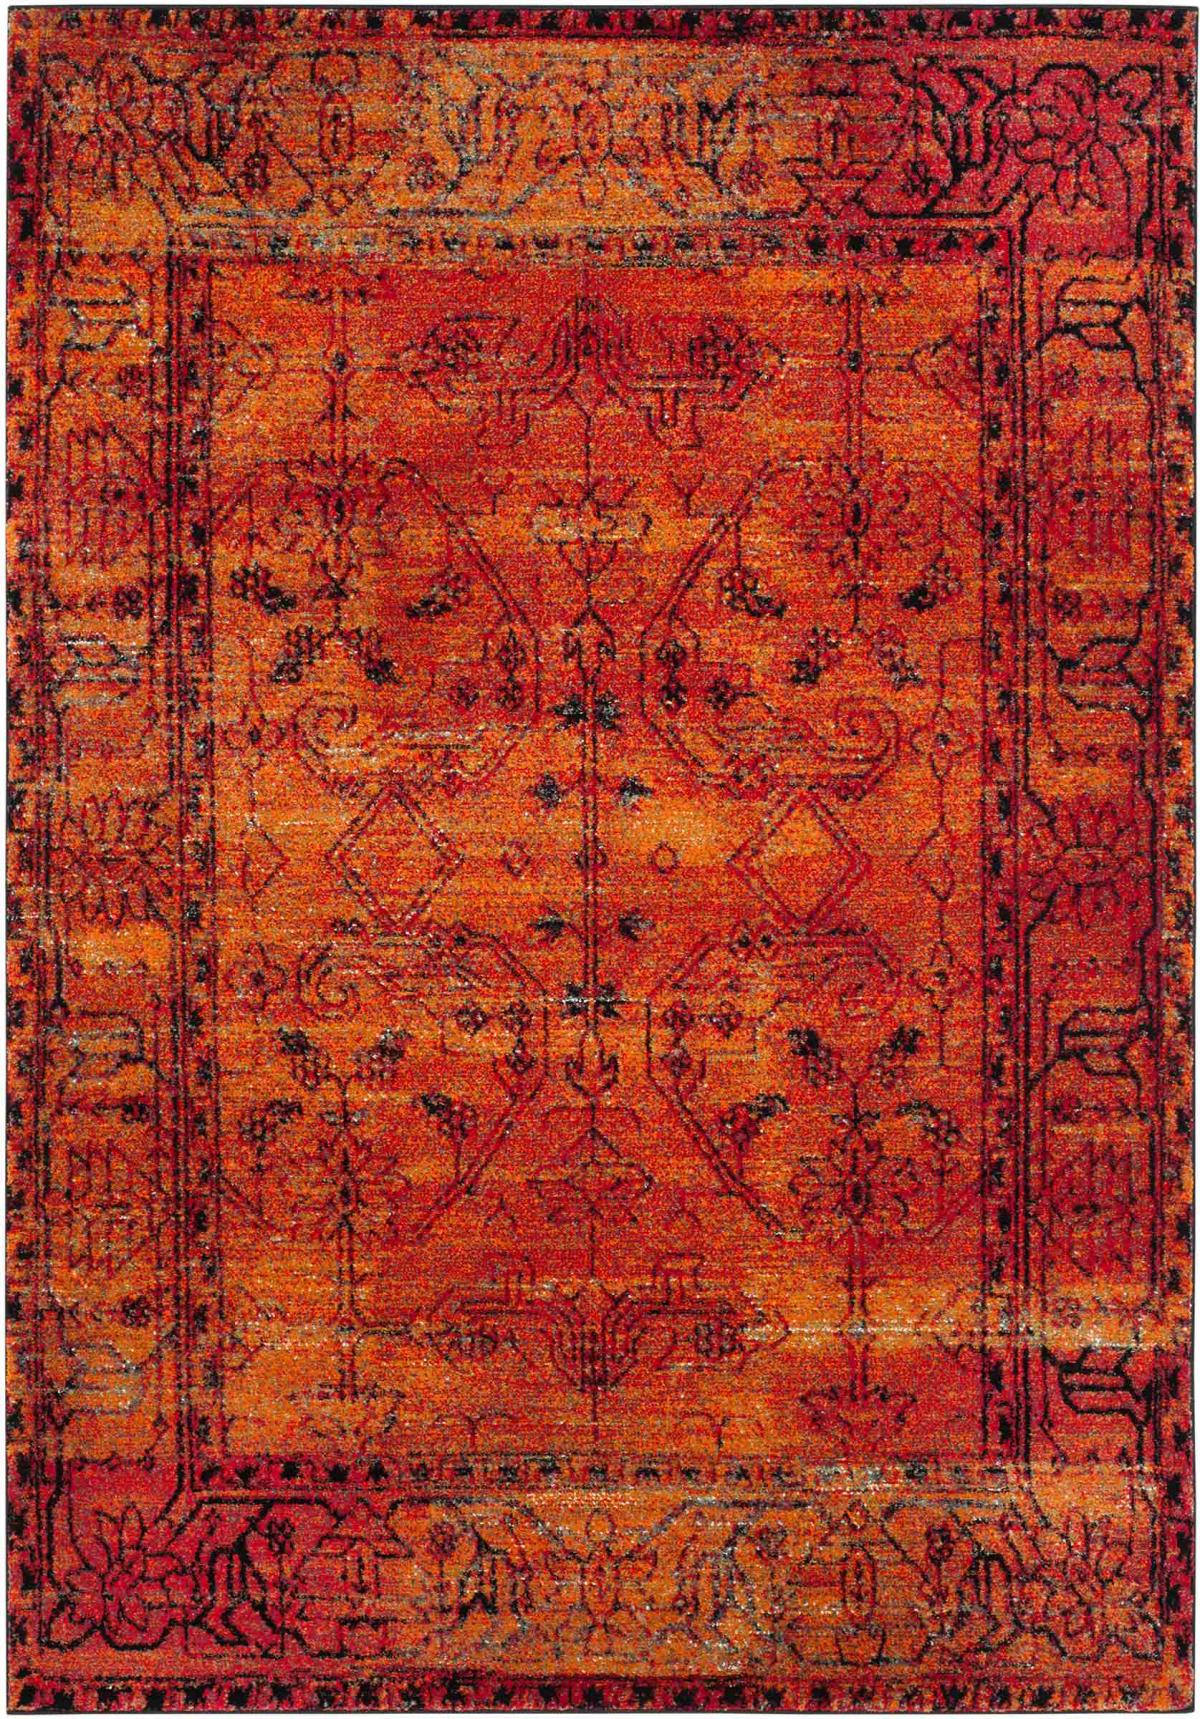 Rug vth216c vintage hamadan area rugs by safavieh for Area carpets and rugs